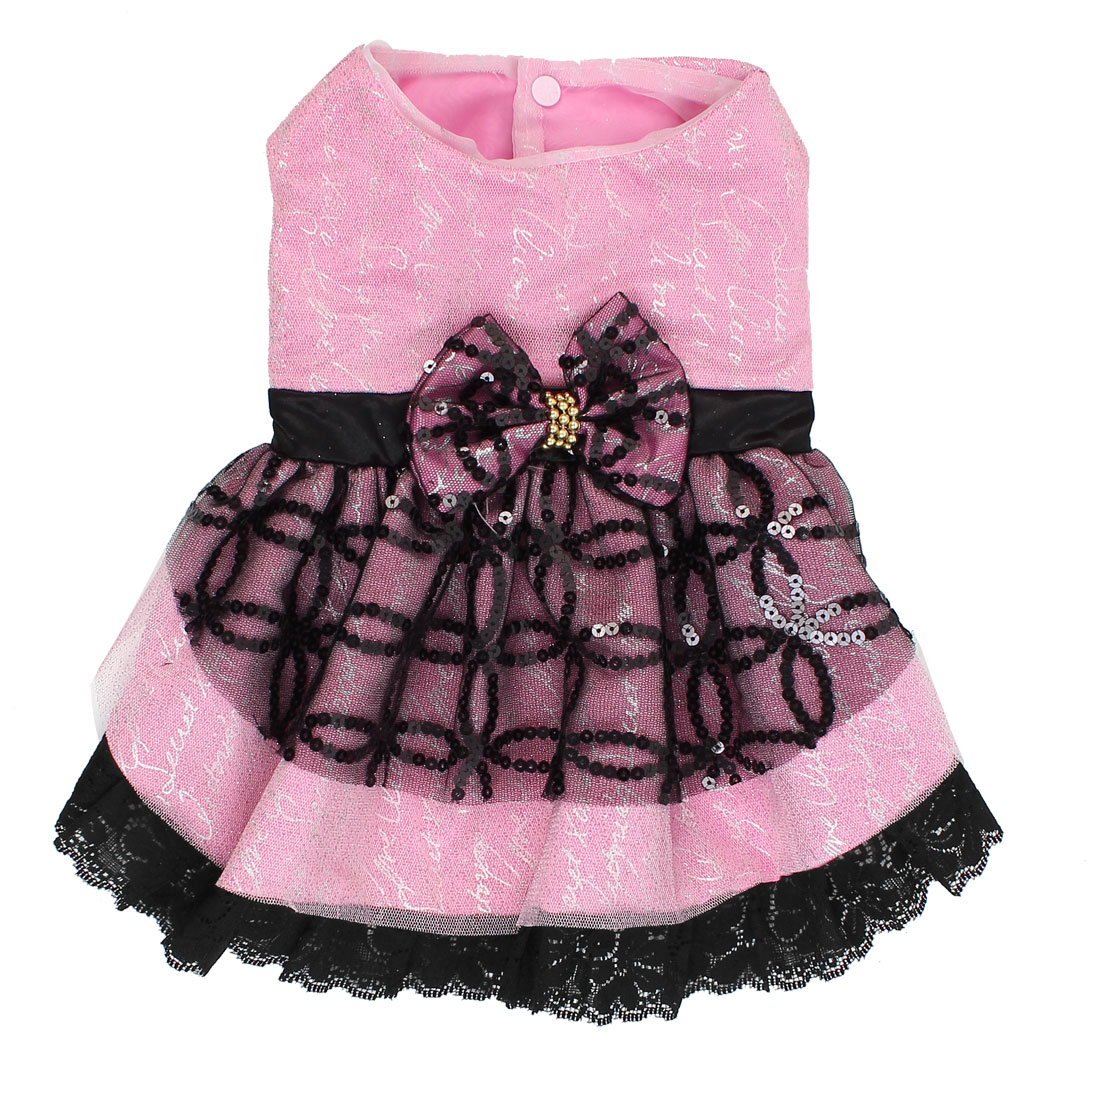 Pet Cat Sequins Bowknot Lace Decor Wedding Dress Skirt Pink Black Size M